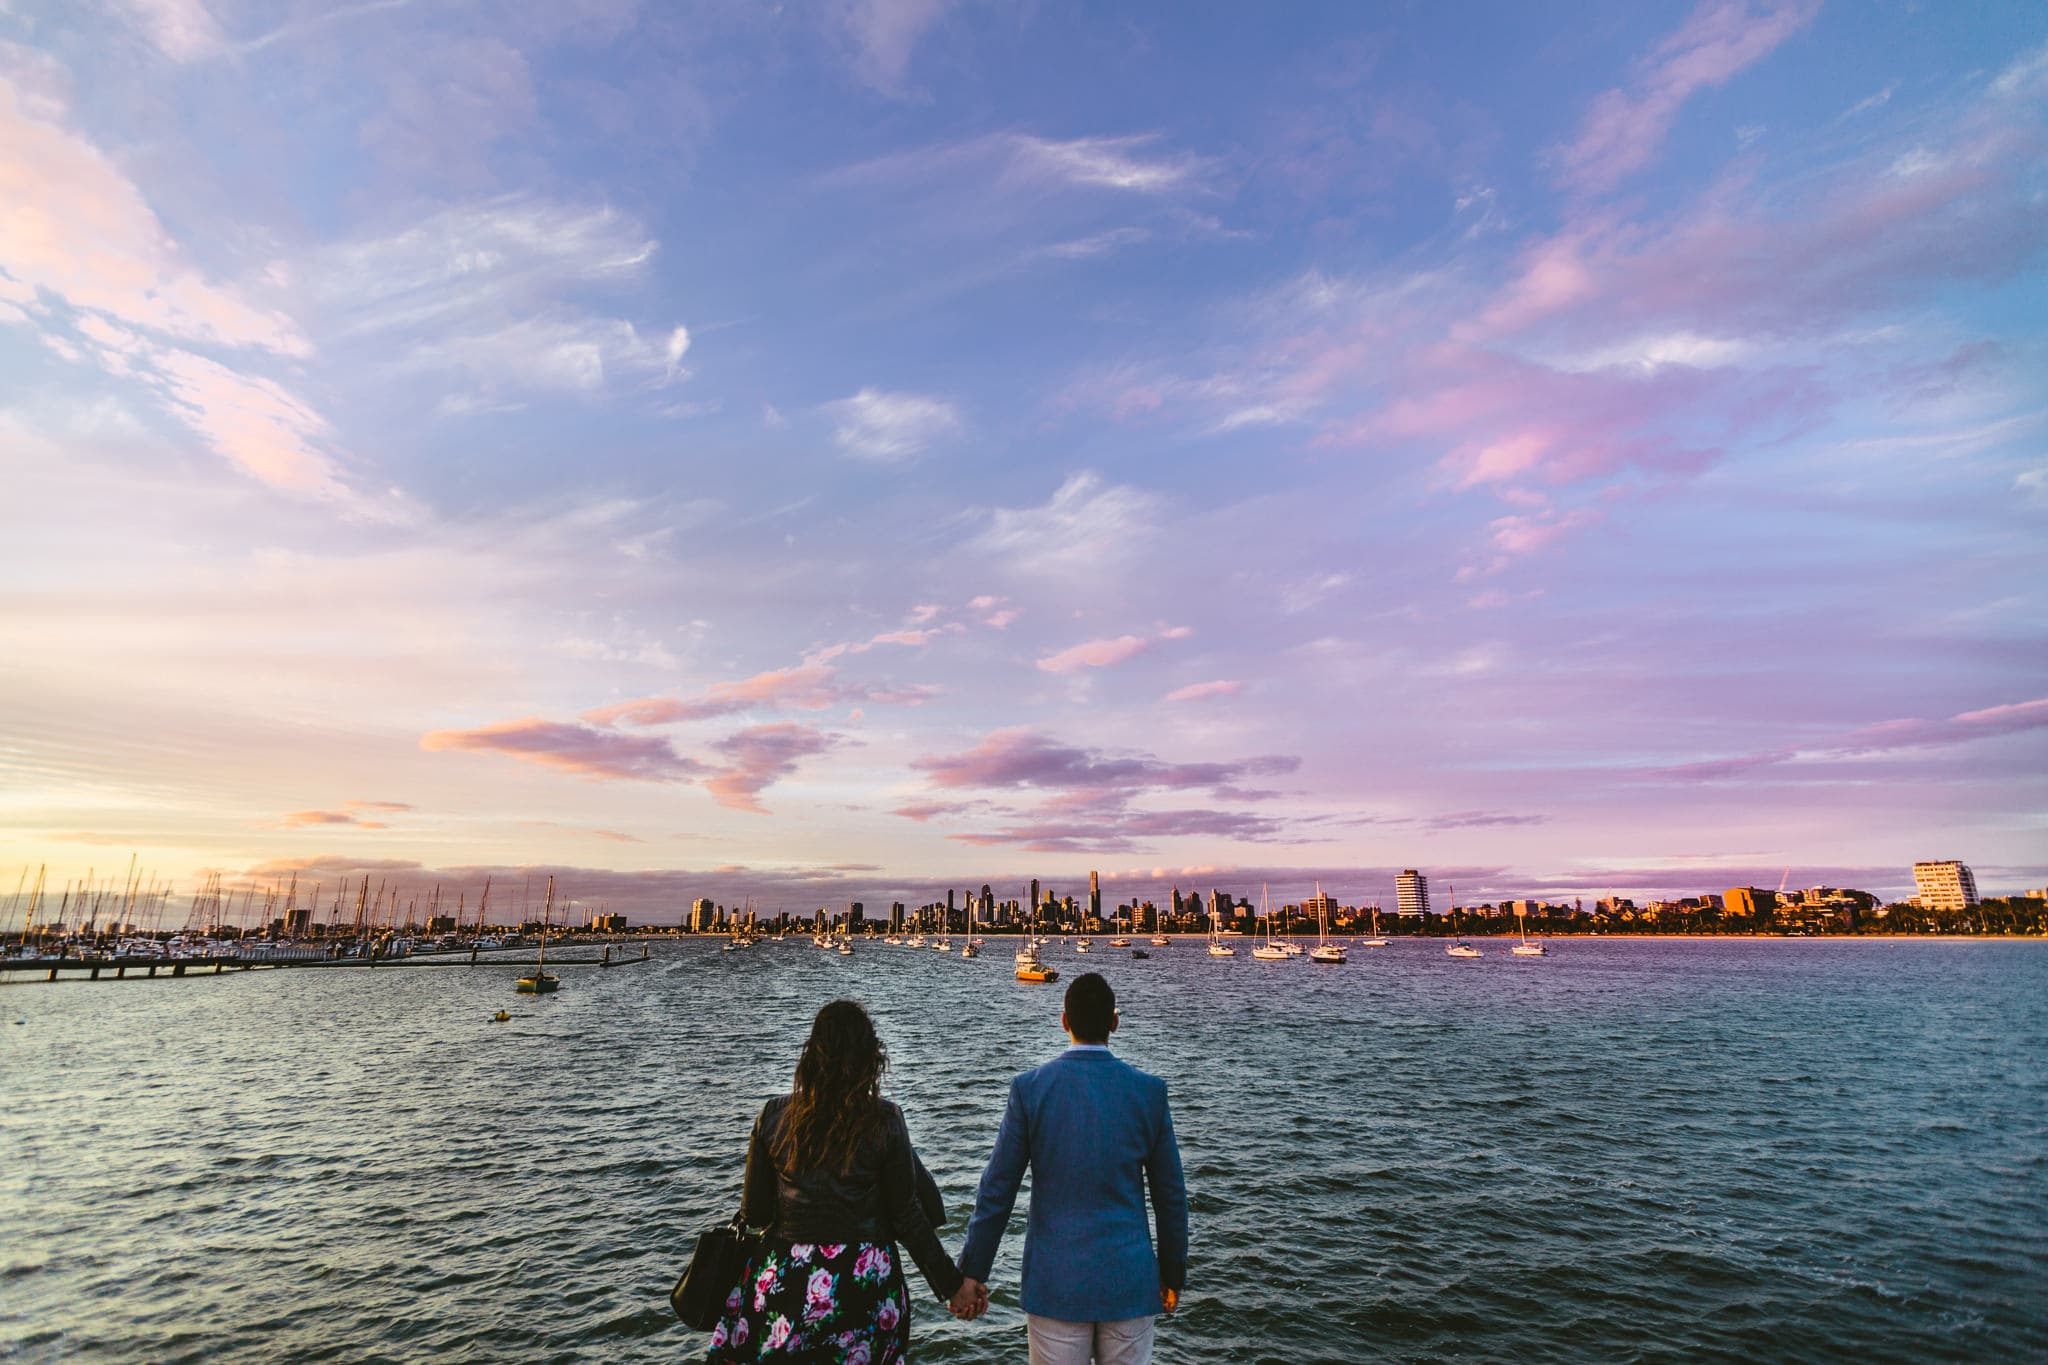 Wedding Photography St Kilda Pier - City view wedding photography in Melbourne - Creative and candid